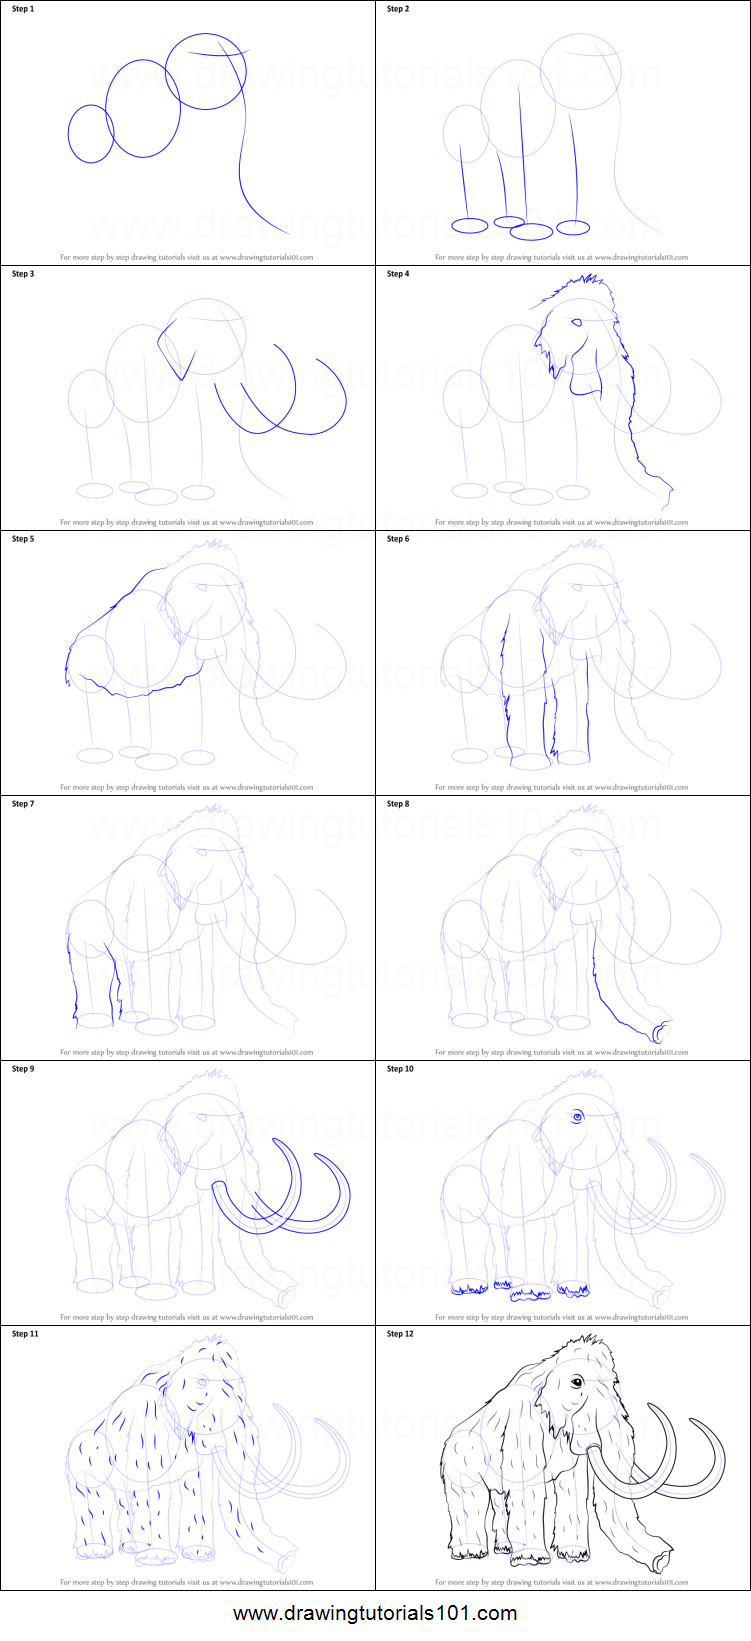 how to draw the cosmet in steps